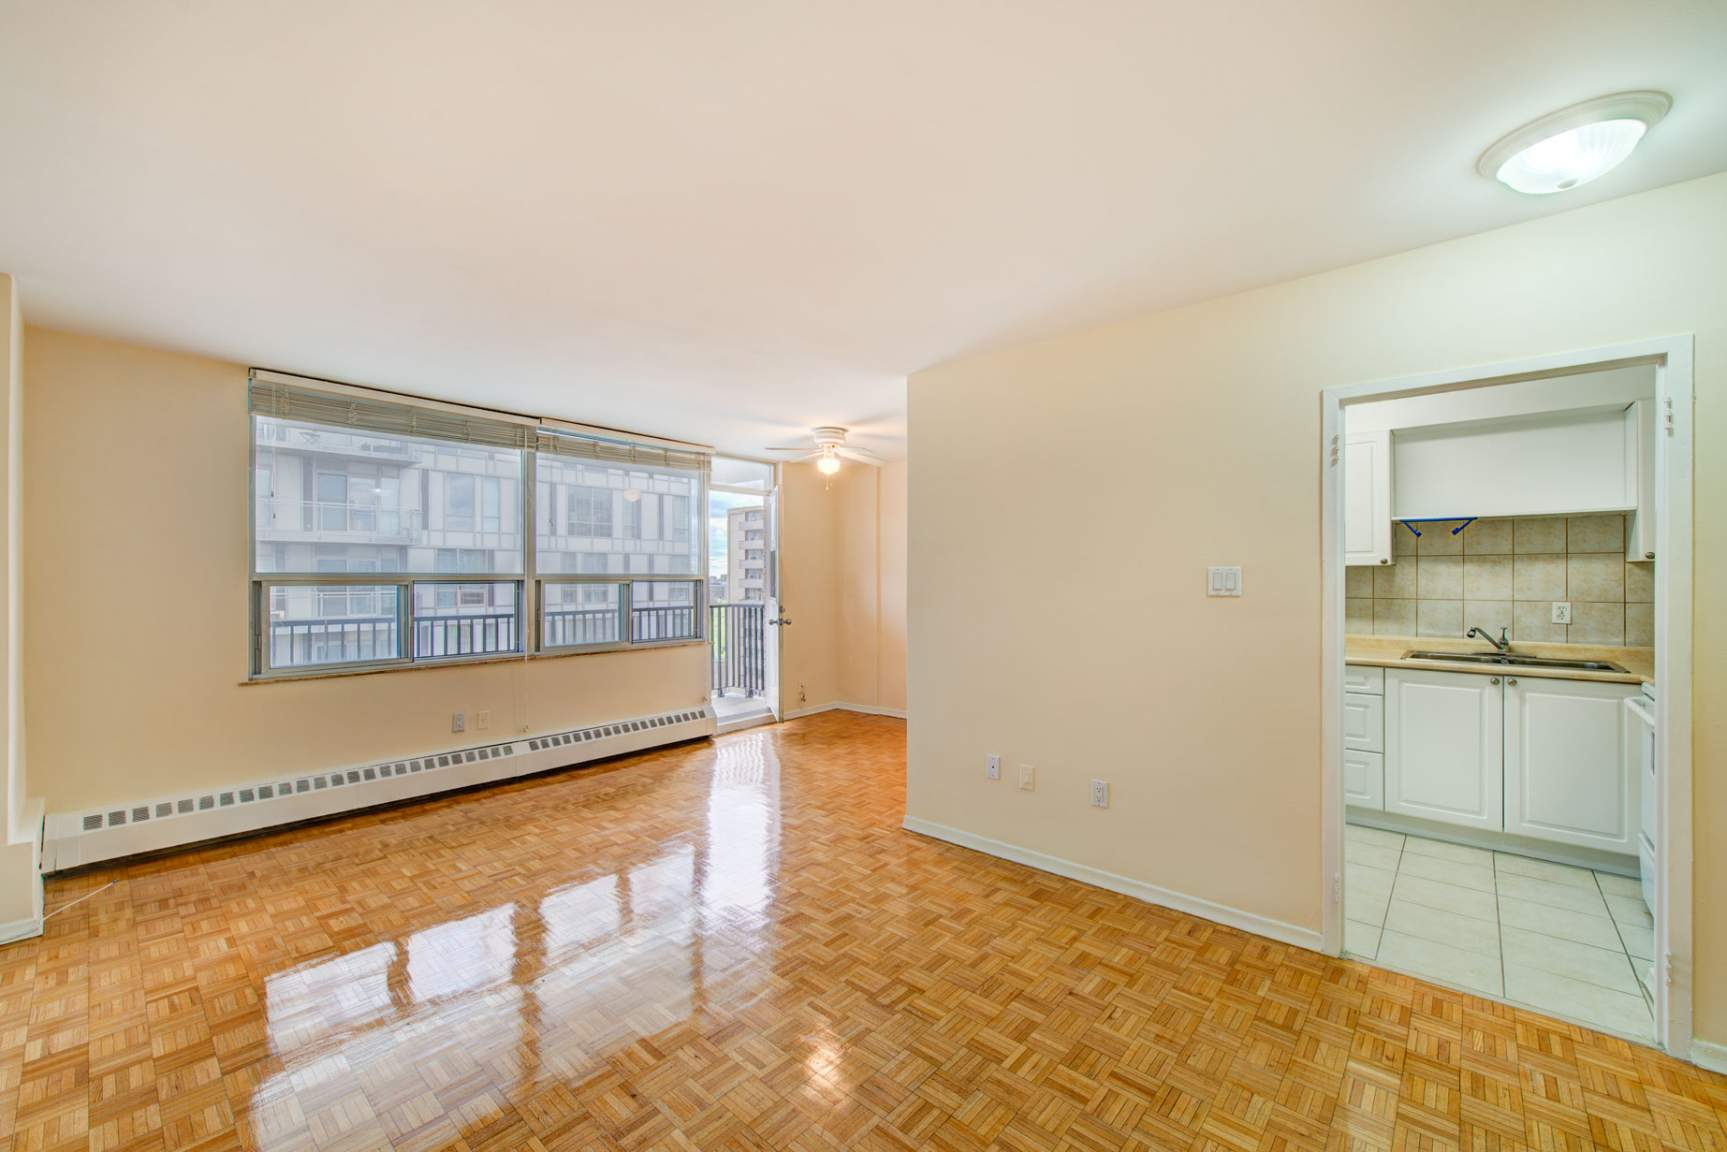 Studio / Bachelor Apartments for rent in Toronto at Redpath Tower - Photo 08 - RentersPages – L400652